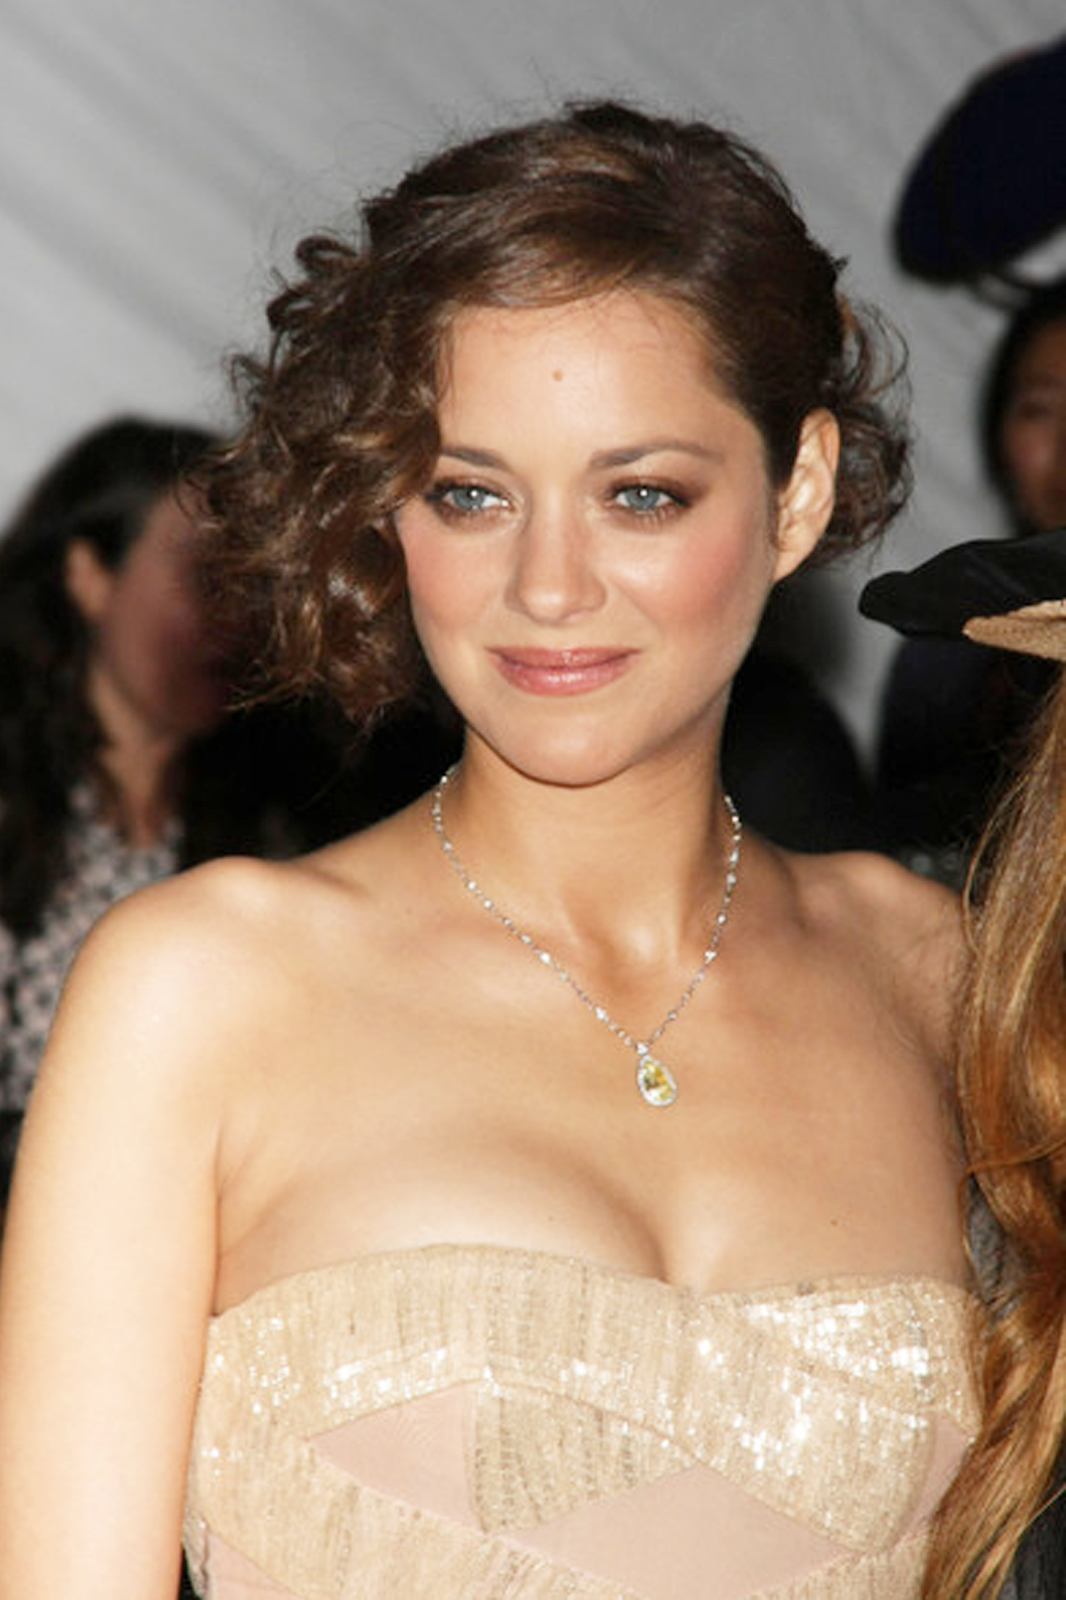 marion cotillard youngmarion cotillard instagram, marion cotillard 2016, marion cotillard dior, marion cotillard gif, marion cotillard guillaume canet, marion cotillard 2017, marion cotillard tumblr, marion cotillard - enter the game, marion cotillard oscar, marion cotillard young, marion cotillard photoshoot, marion cotillard film, marion cotillard movies, marion cotillard кинопоиск, marion cotillard фото, marion cotillard wikipedia, marion cotillard википедия, marion cotillard style, marion cotillard francais, marion cotillard фильмография